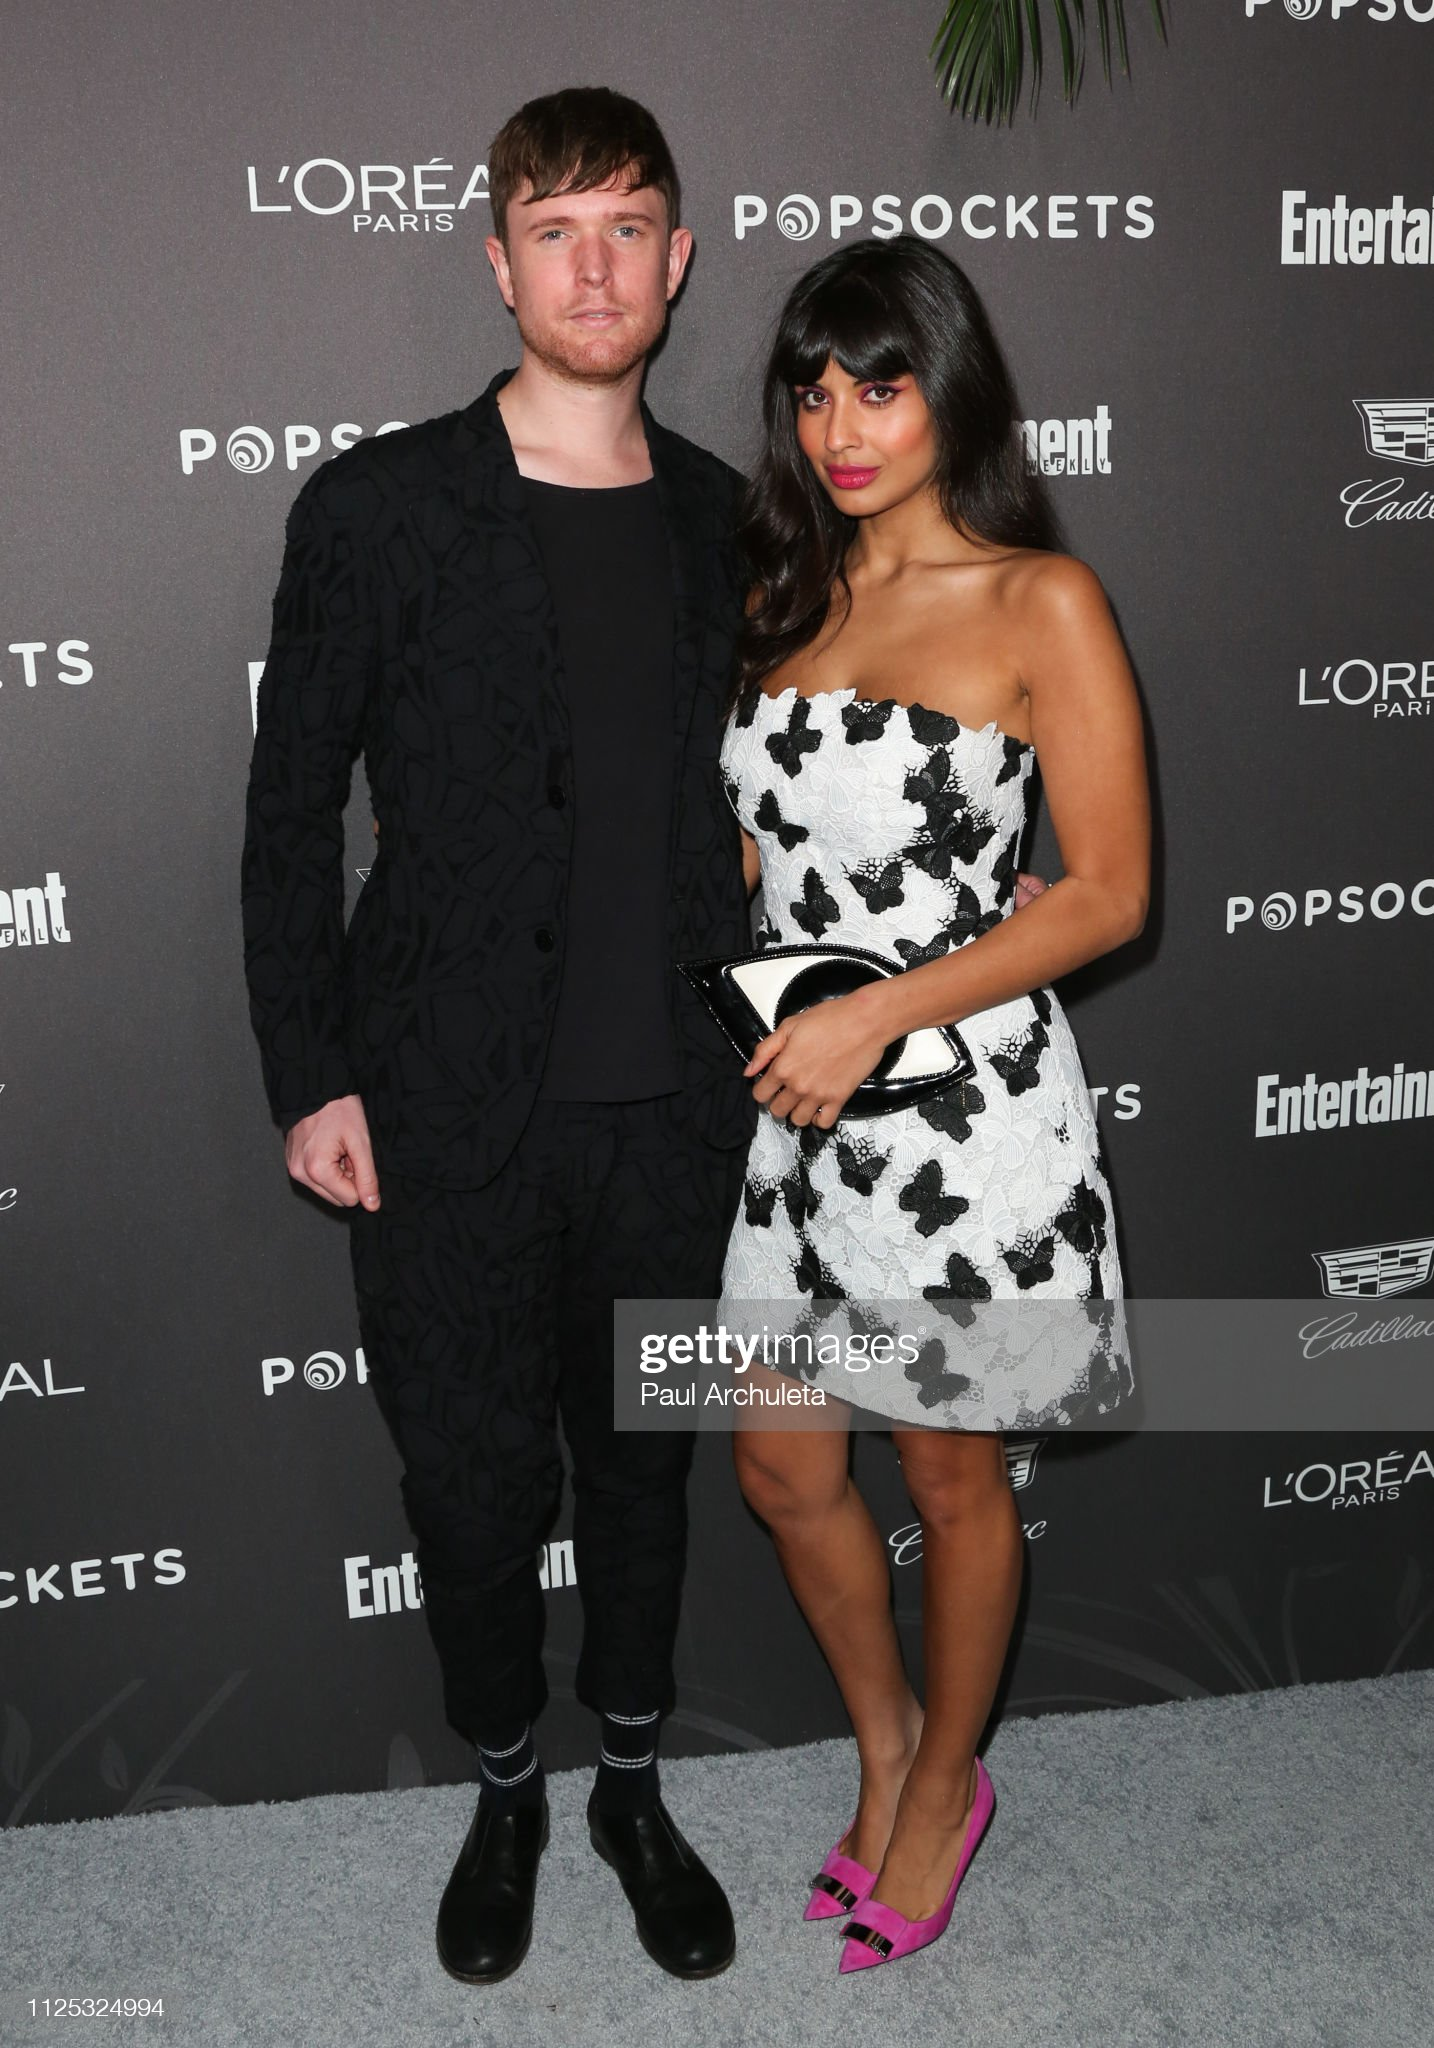 ¿Cuánto mide Jameela Jamil? - Real height Singer-songwriter-james-blake-and-actress-jameela-jamil-attend-the-picture-id1125324994?s=2048x2048